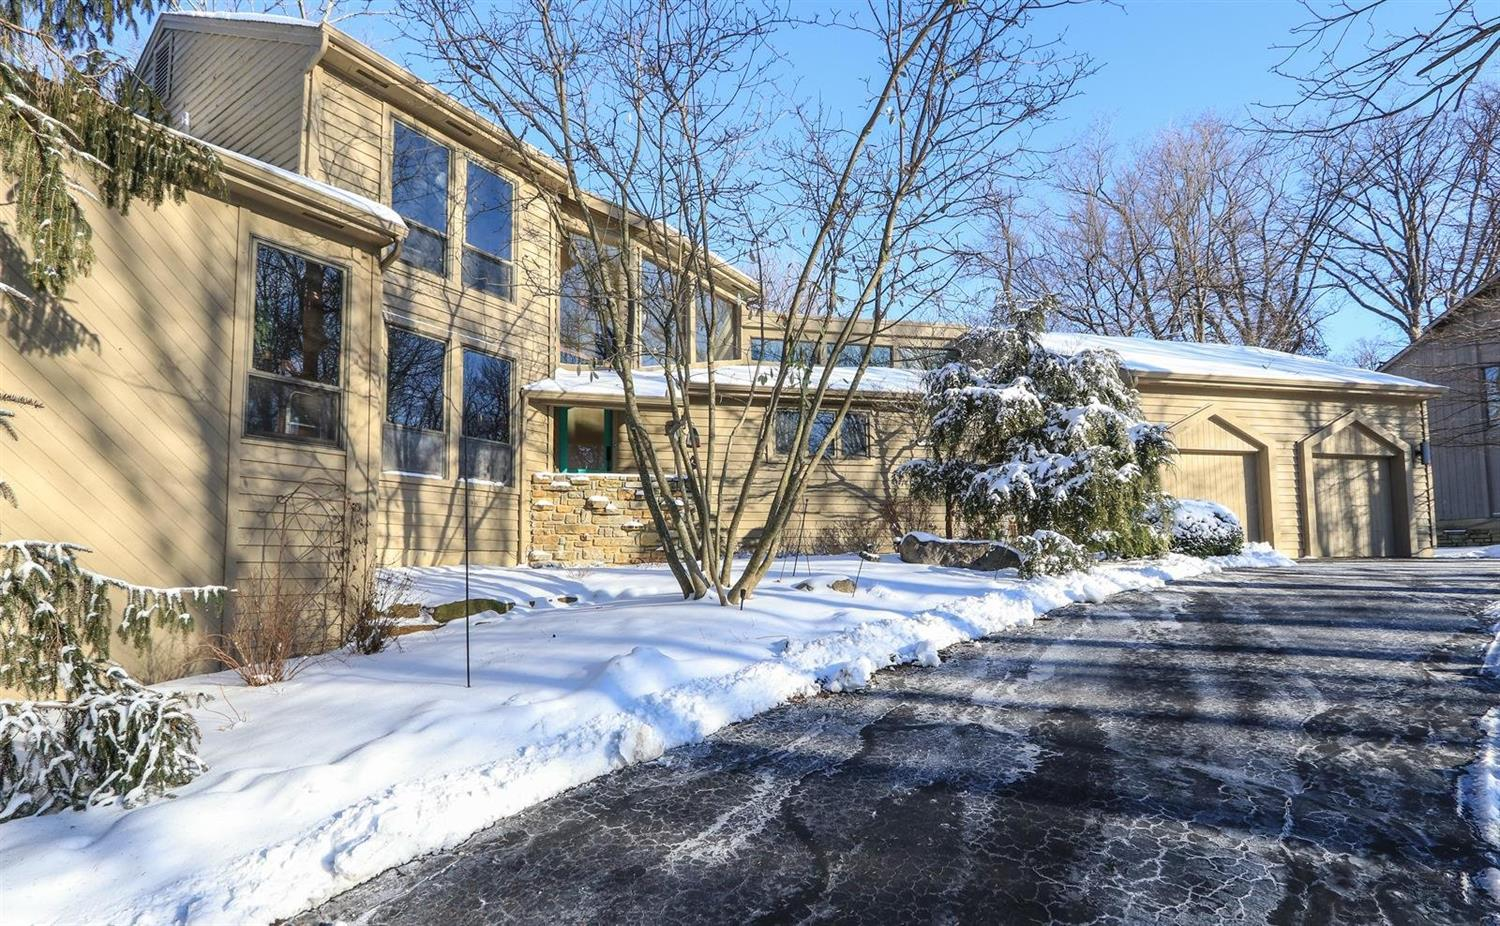 Property for sale at 8 Hollow Oak Court, Blue Ash,  OH 45241